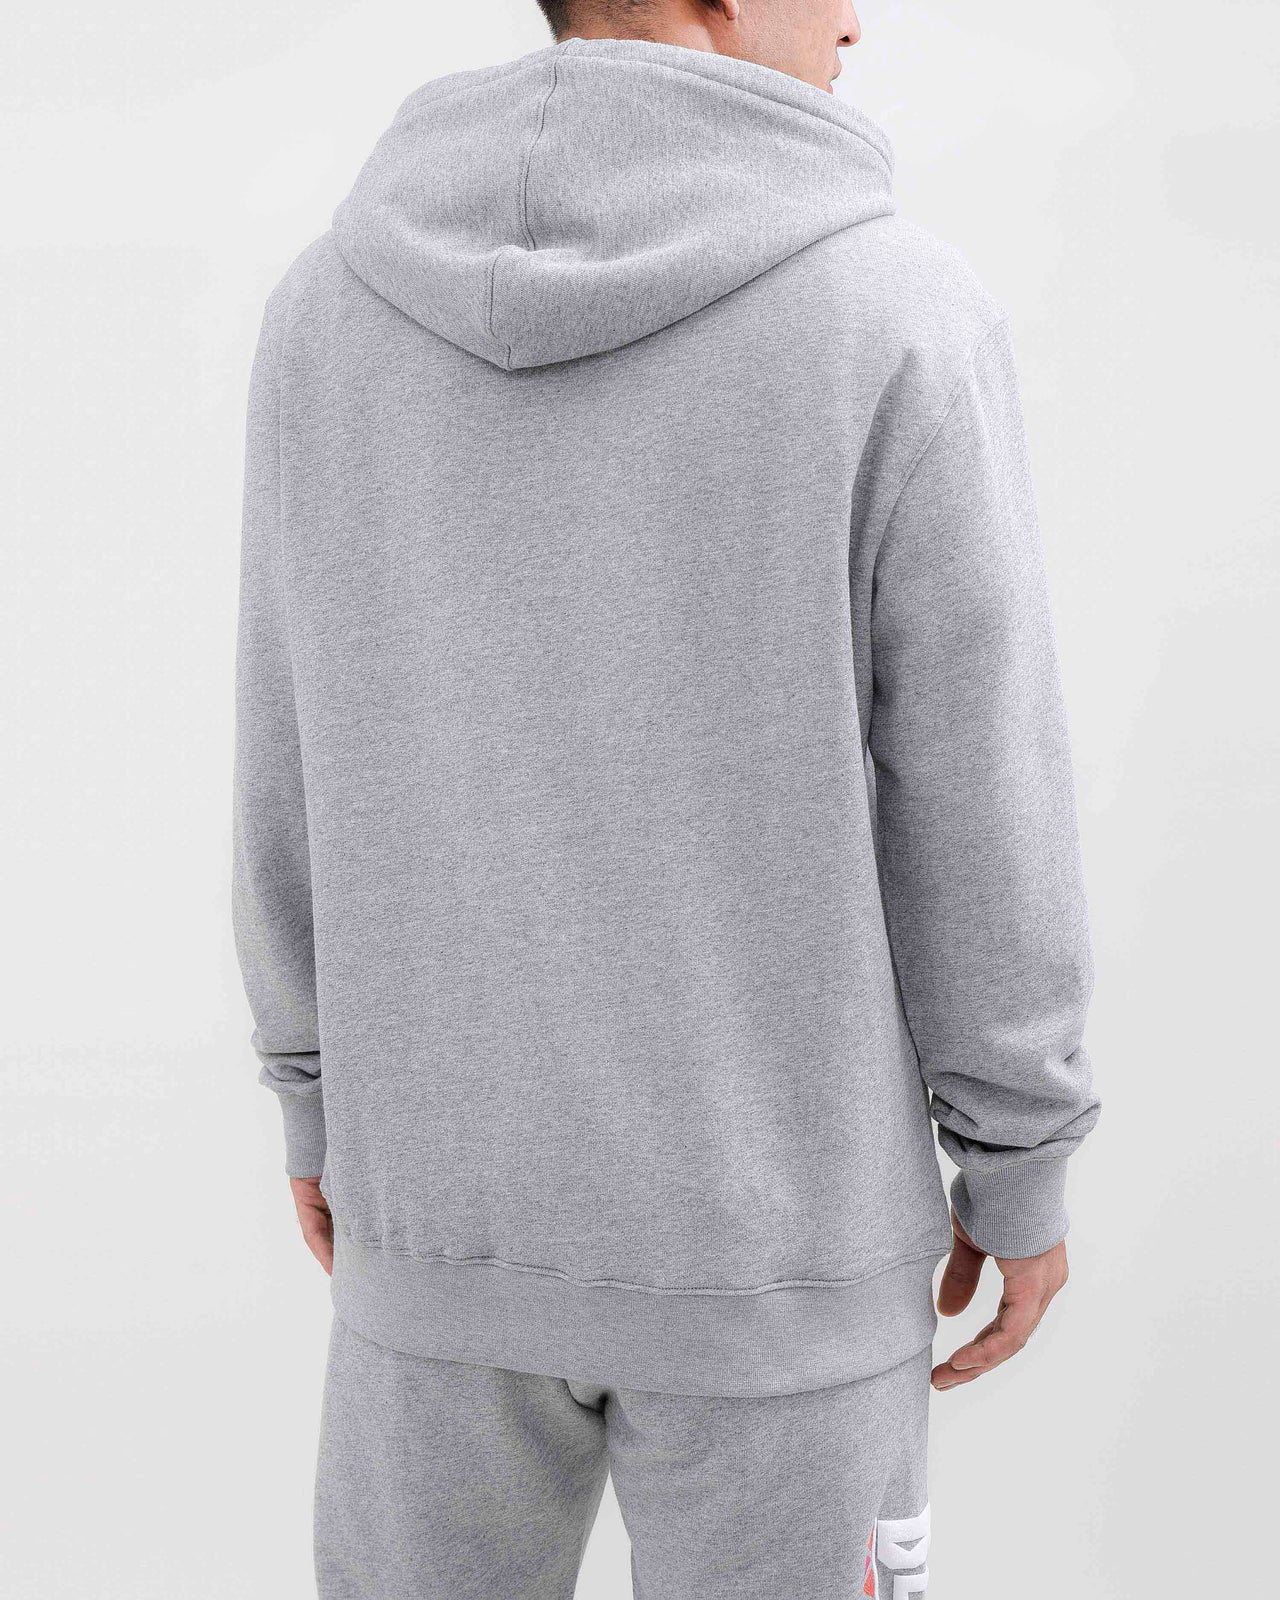 CHOICES HOODY-COLOR: HEATHER GRAY